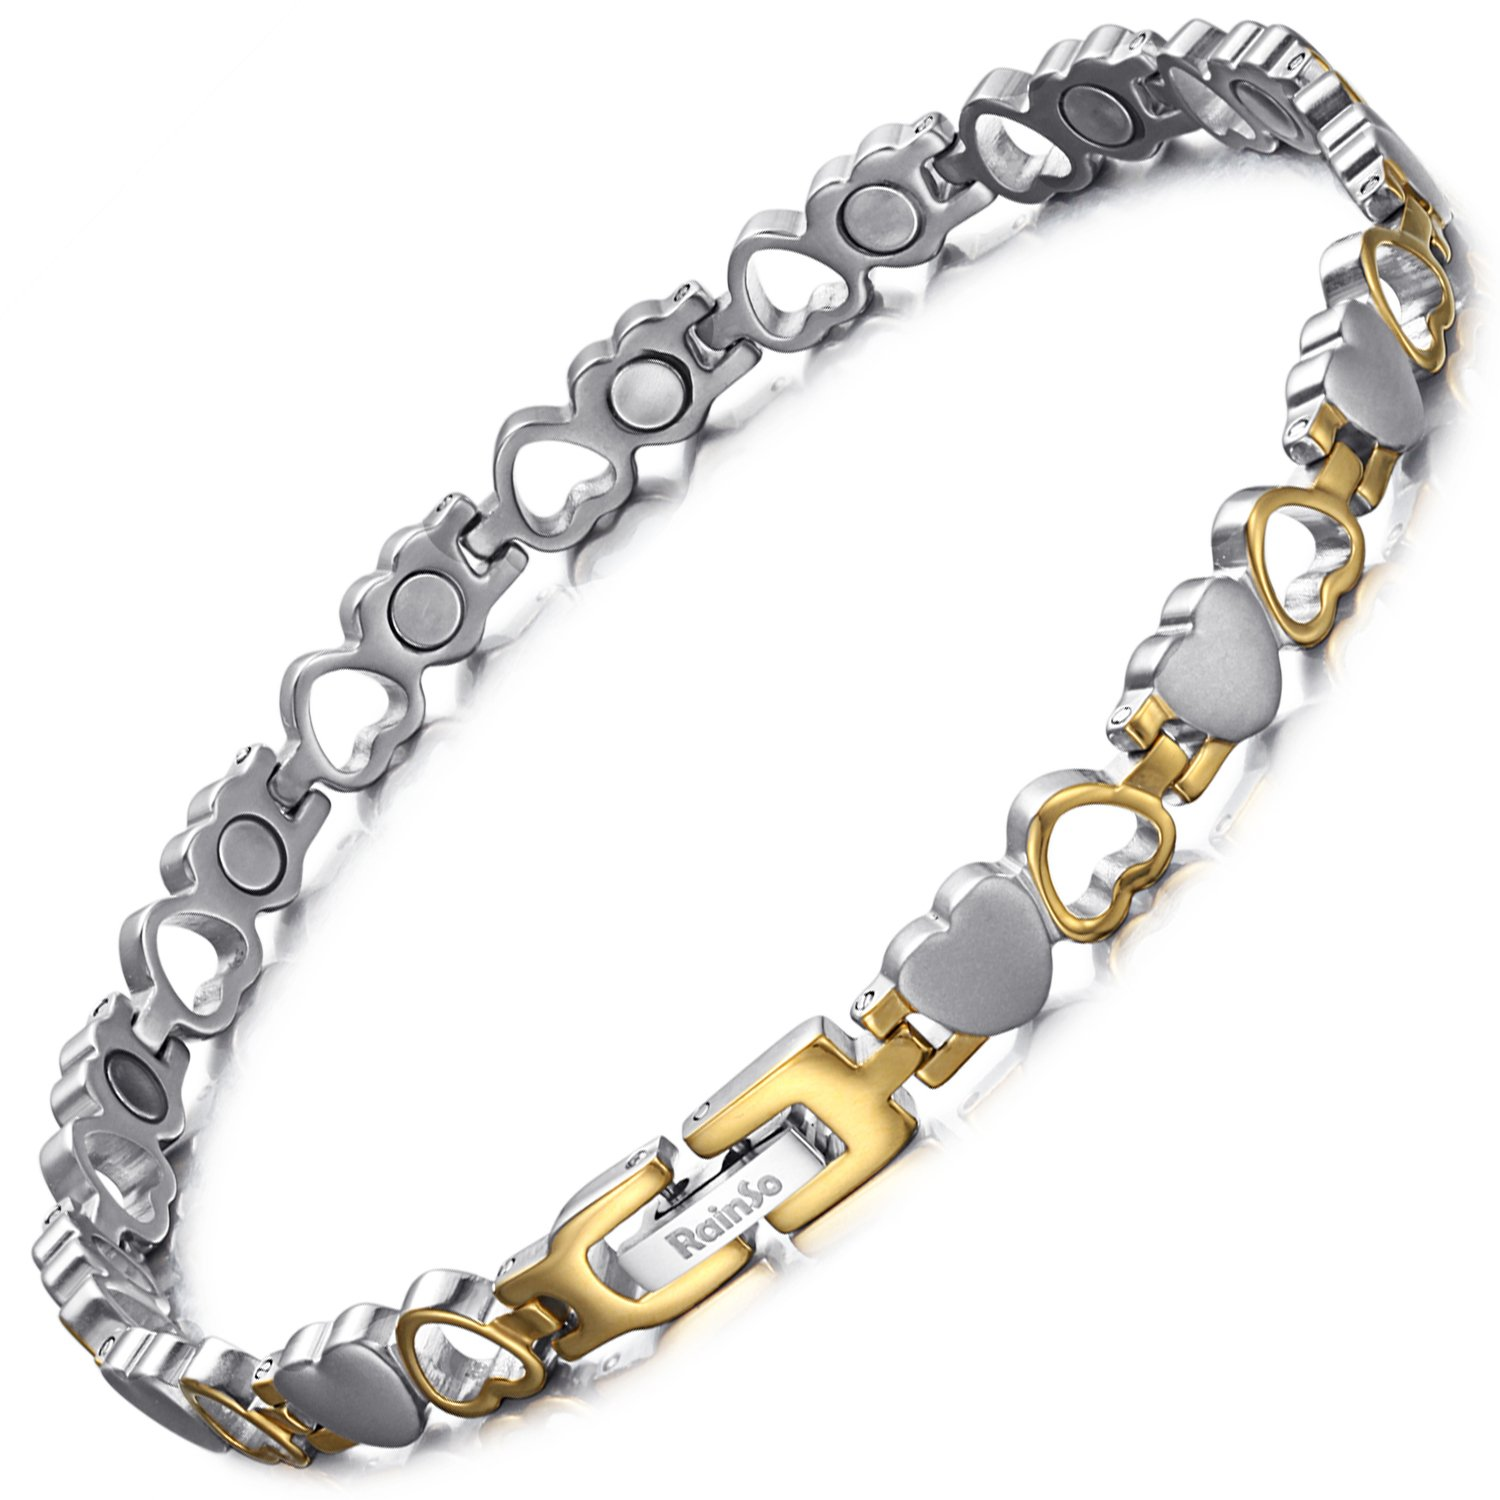 RainSo Womens Titanium Heart Design Magnetic Health Therapy Anklets Pain Relief Adjustable OTA-128SG-UK